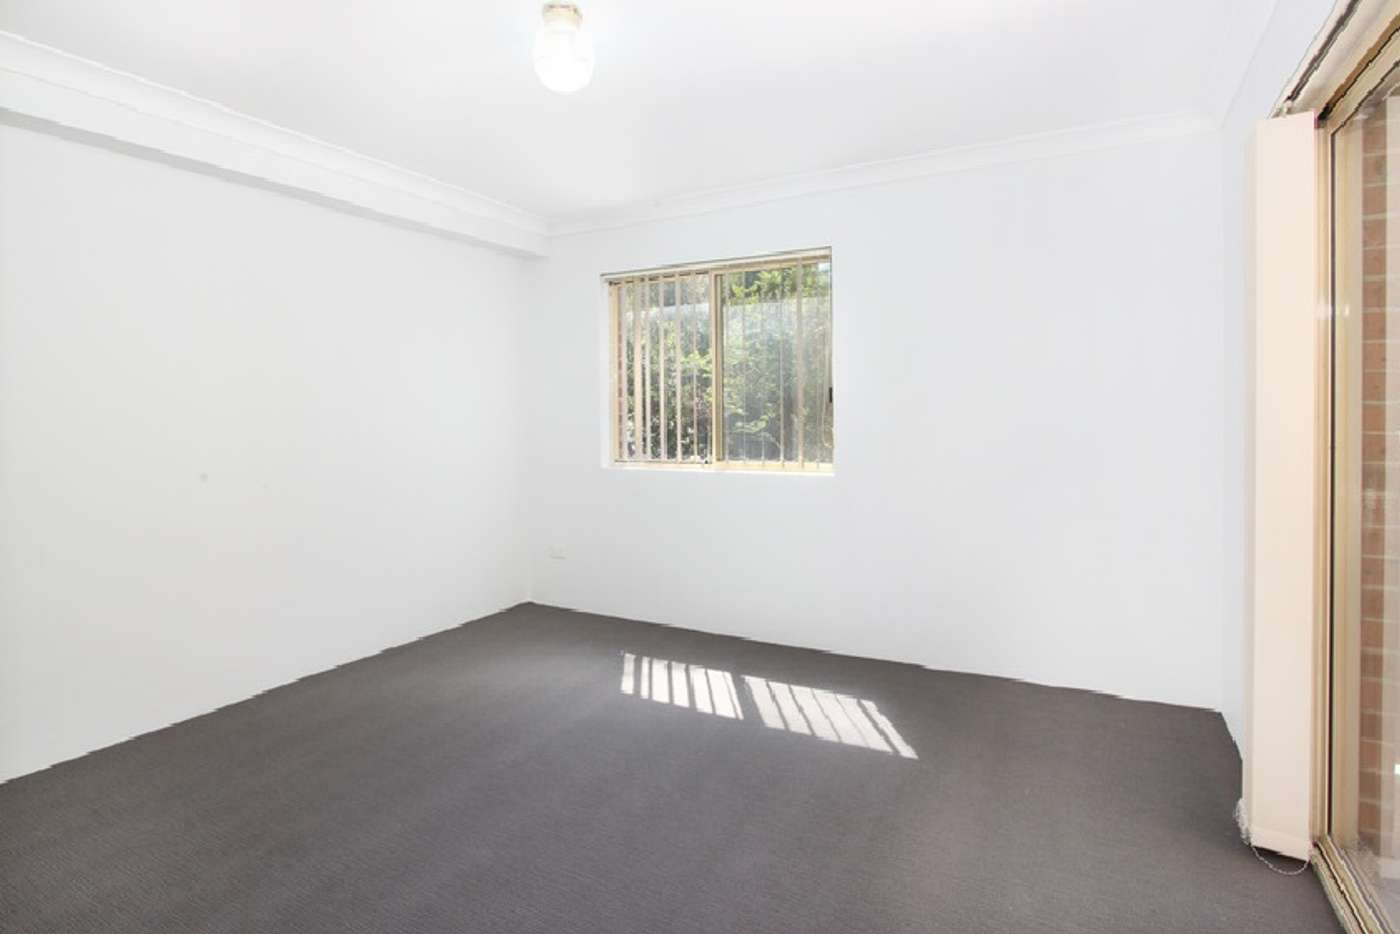 Seventh view of Homely apartment listing, Unit 36/8-10 Fourth Avenue, Blacktown NSW 2148